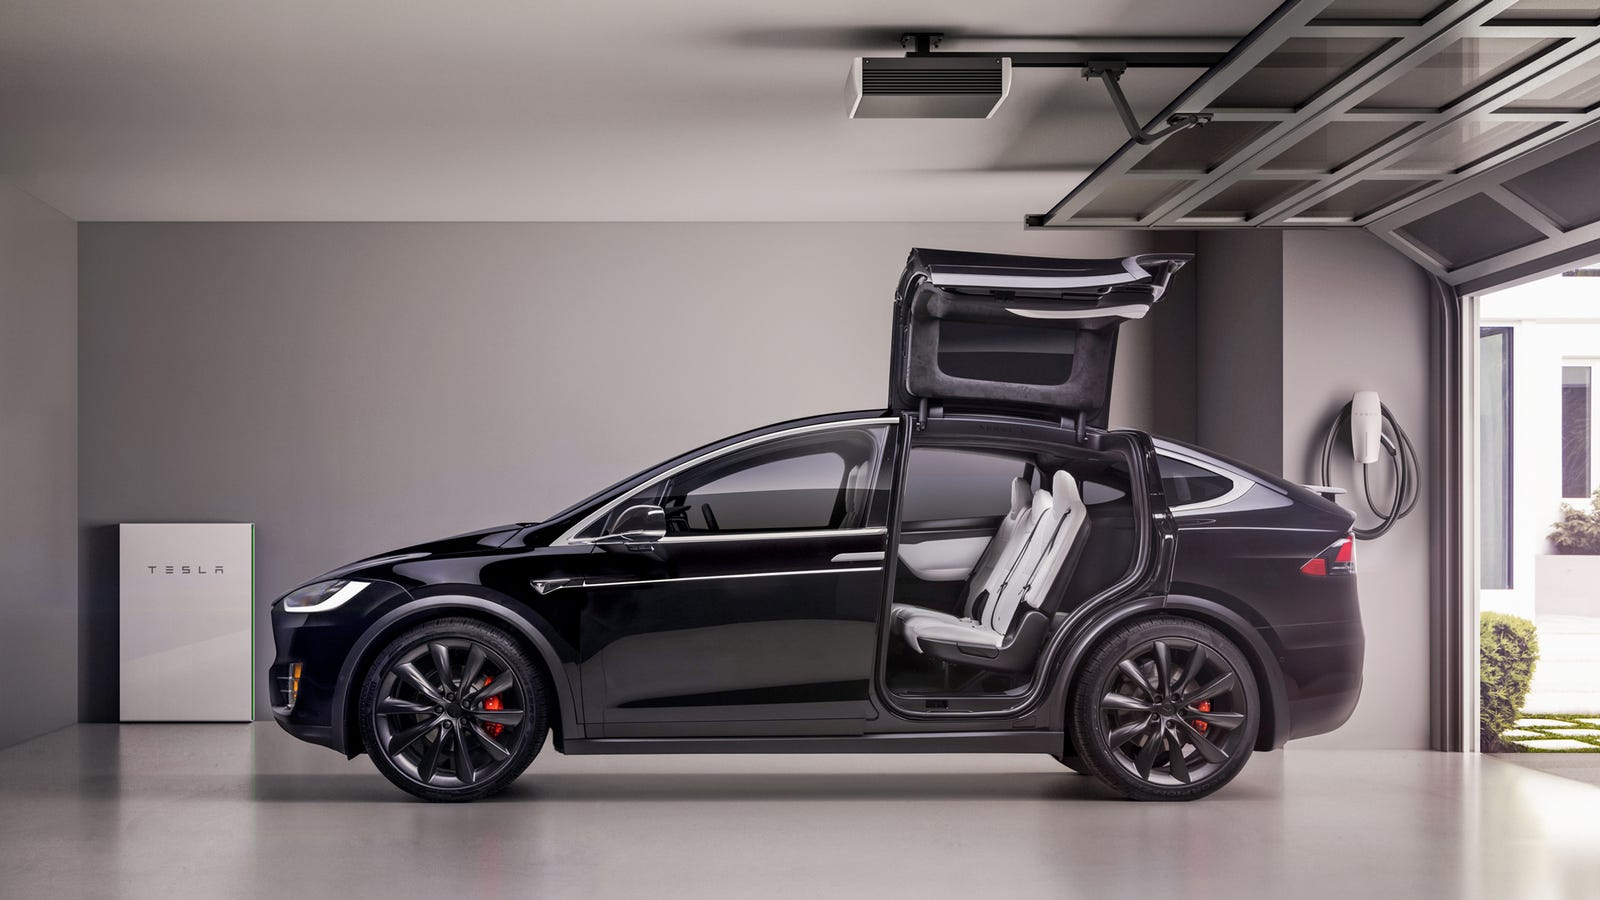 New Research Promises Electric Car Batteries That Last For a Million Miles